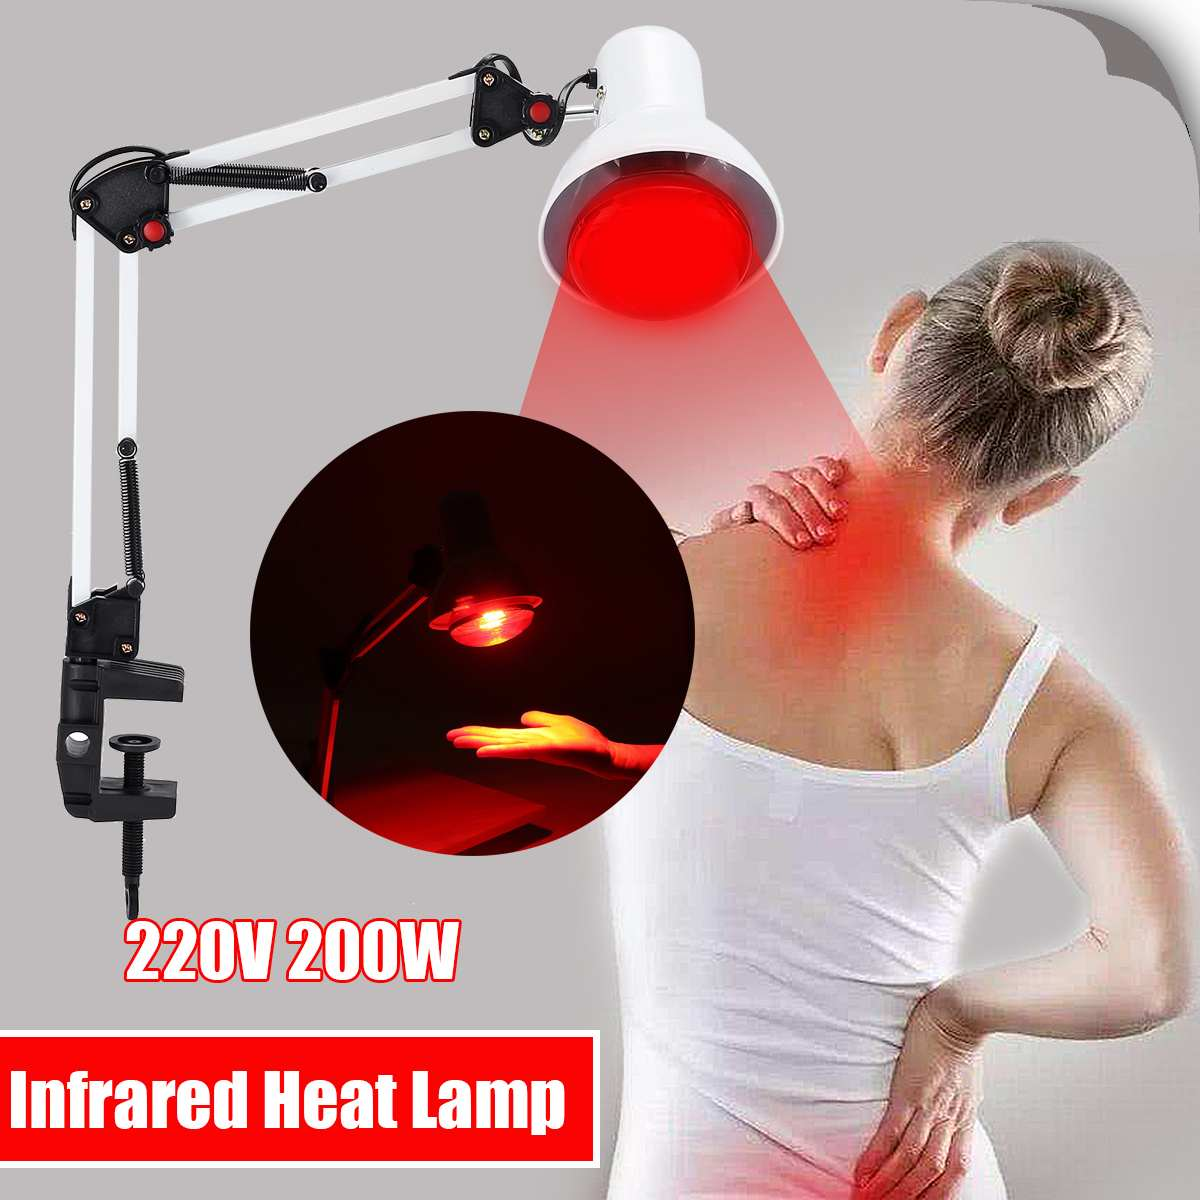 100W 220V Infrared Heat Lamp Night Lights Heating Therapy Light Therapeutic Pain Relief Health Bulb Physiotherapy Instrument